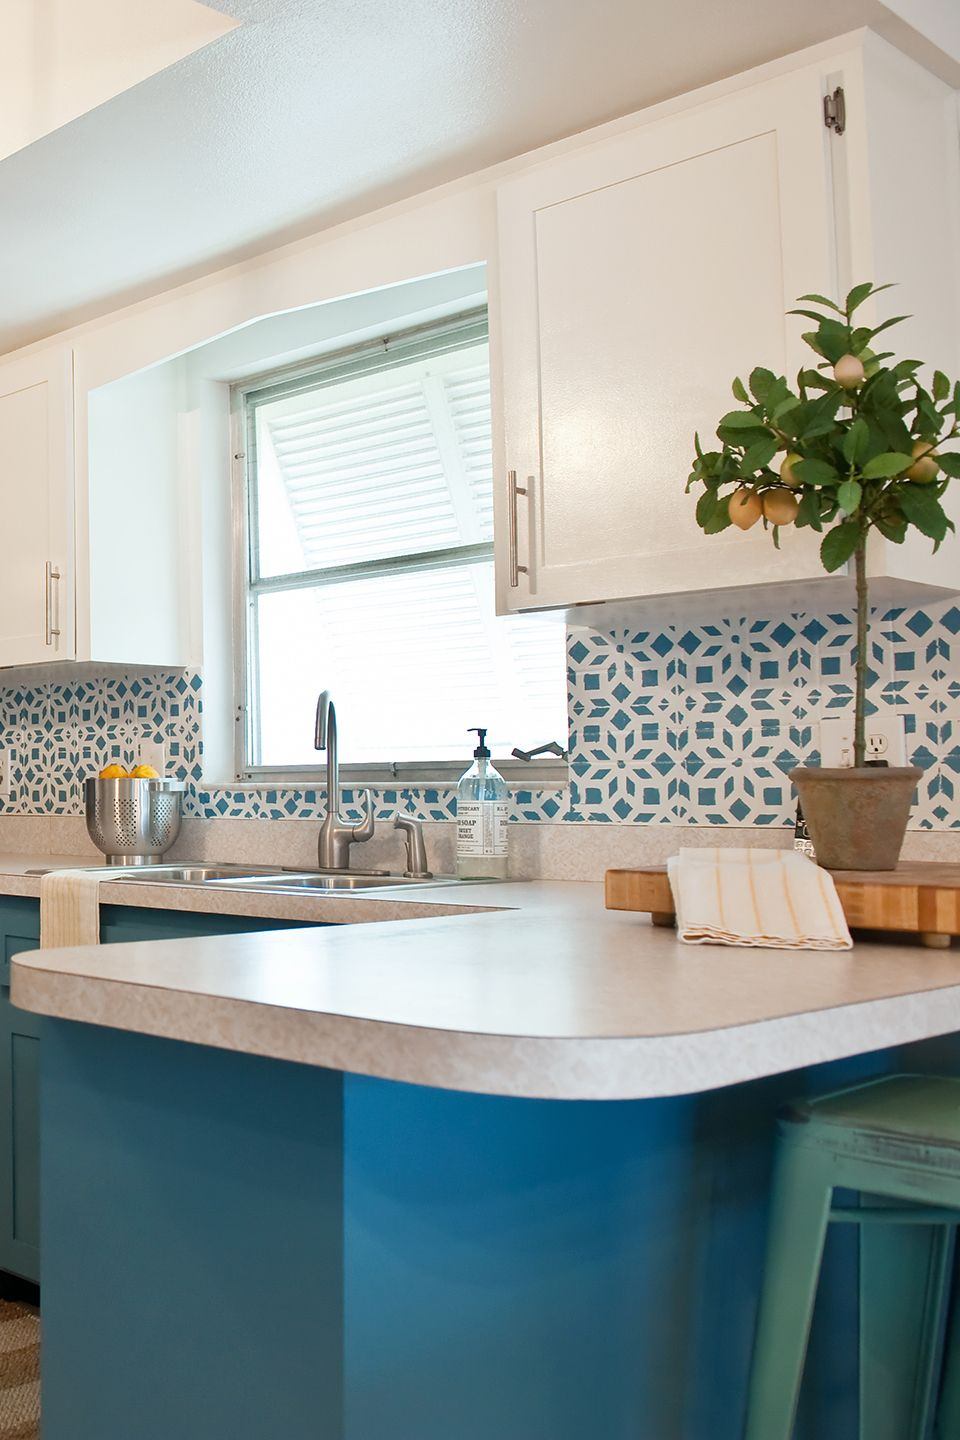 5 Low-Cost Ideas for a Kitchen Remodel on a Budget in 2020 ...